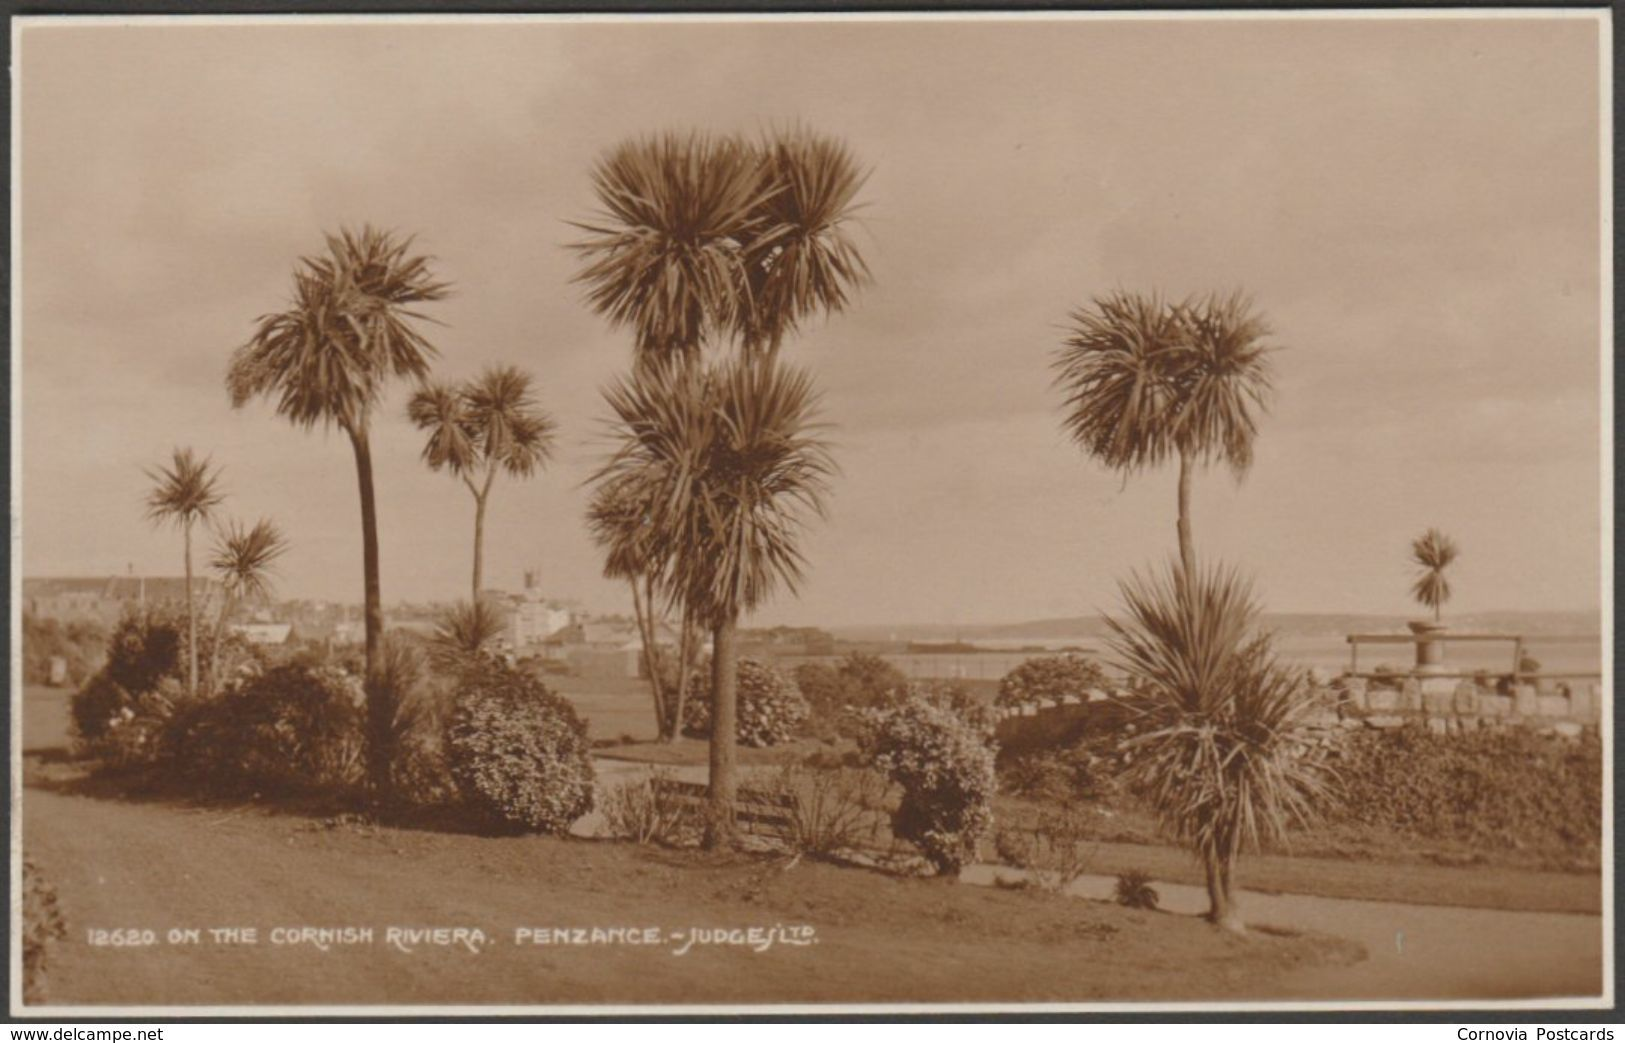 On the Cornish Riviera, Penzance, Cornwall, c.1930s - Judges RP Postcard